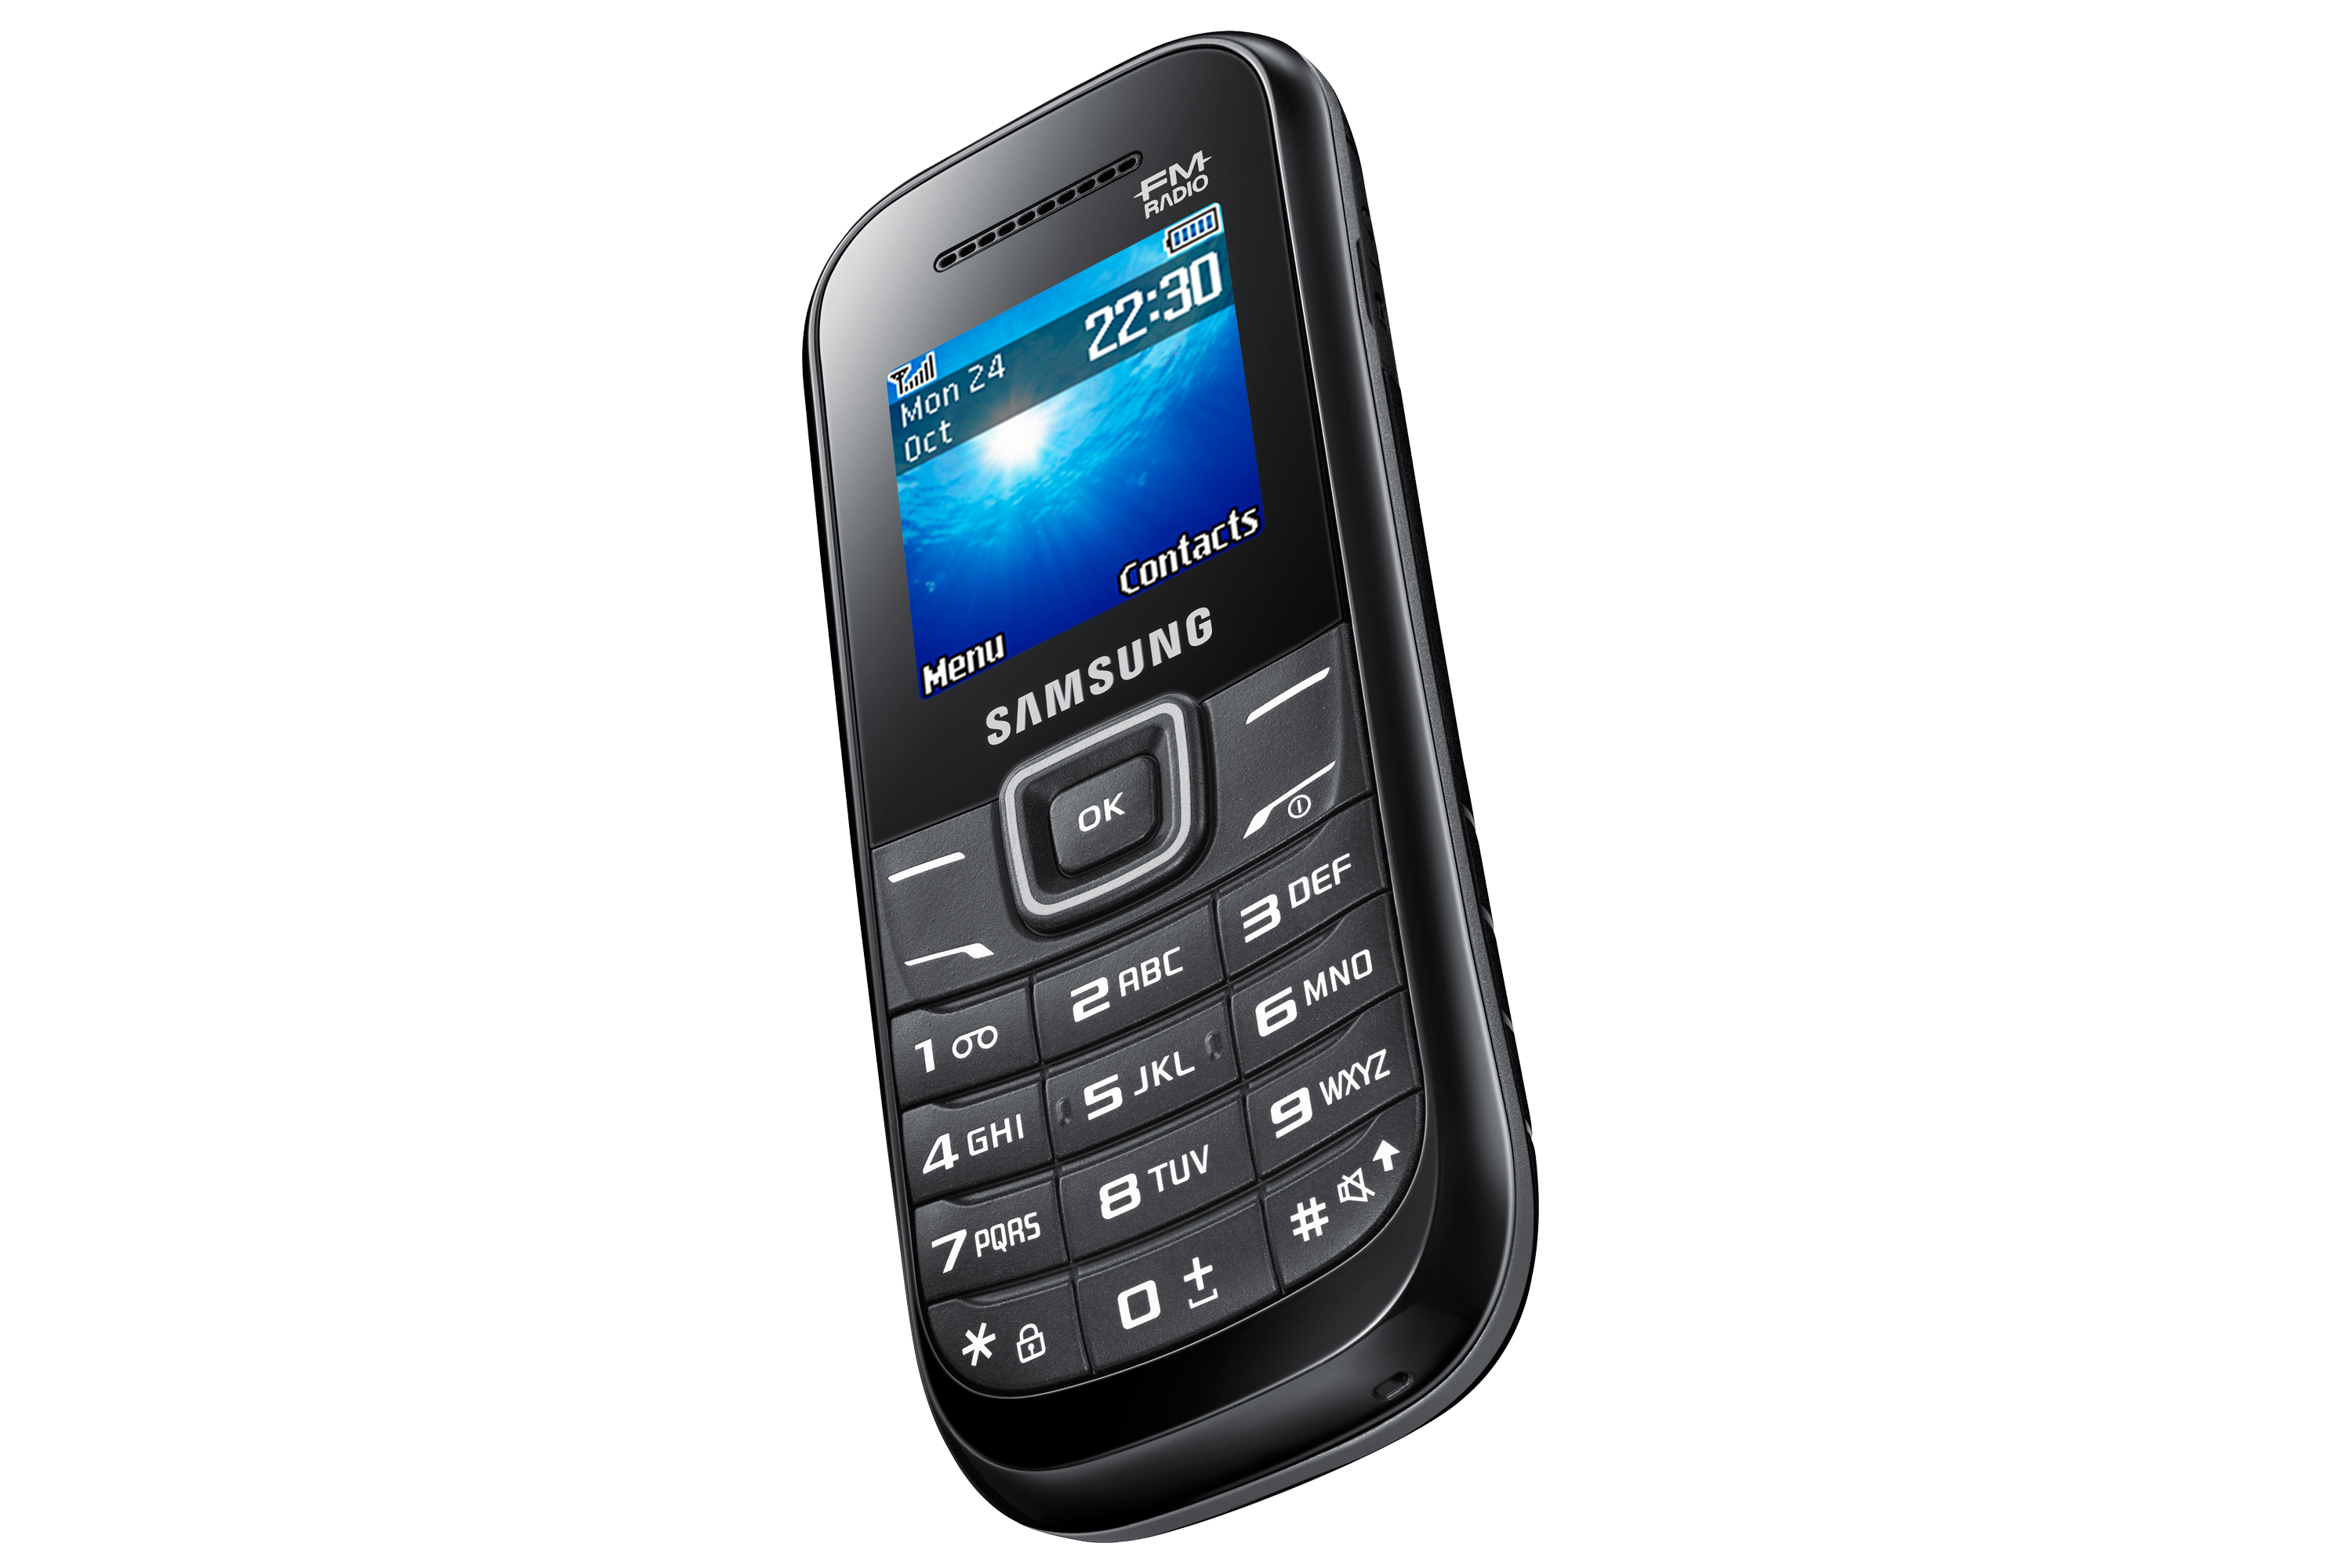 Image Result For Unblocked Cell Phone